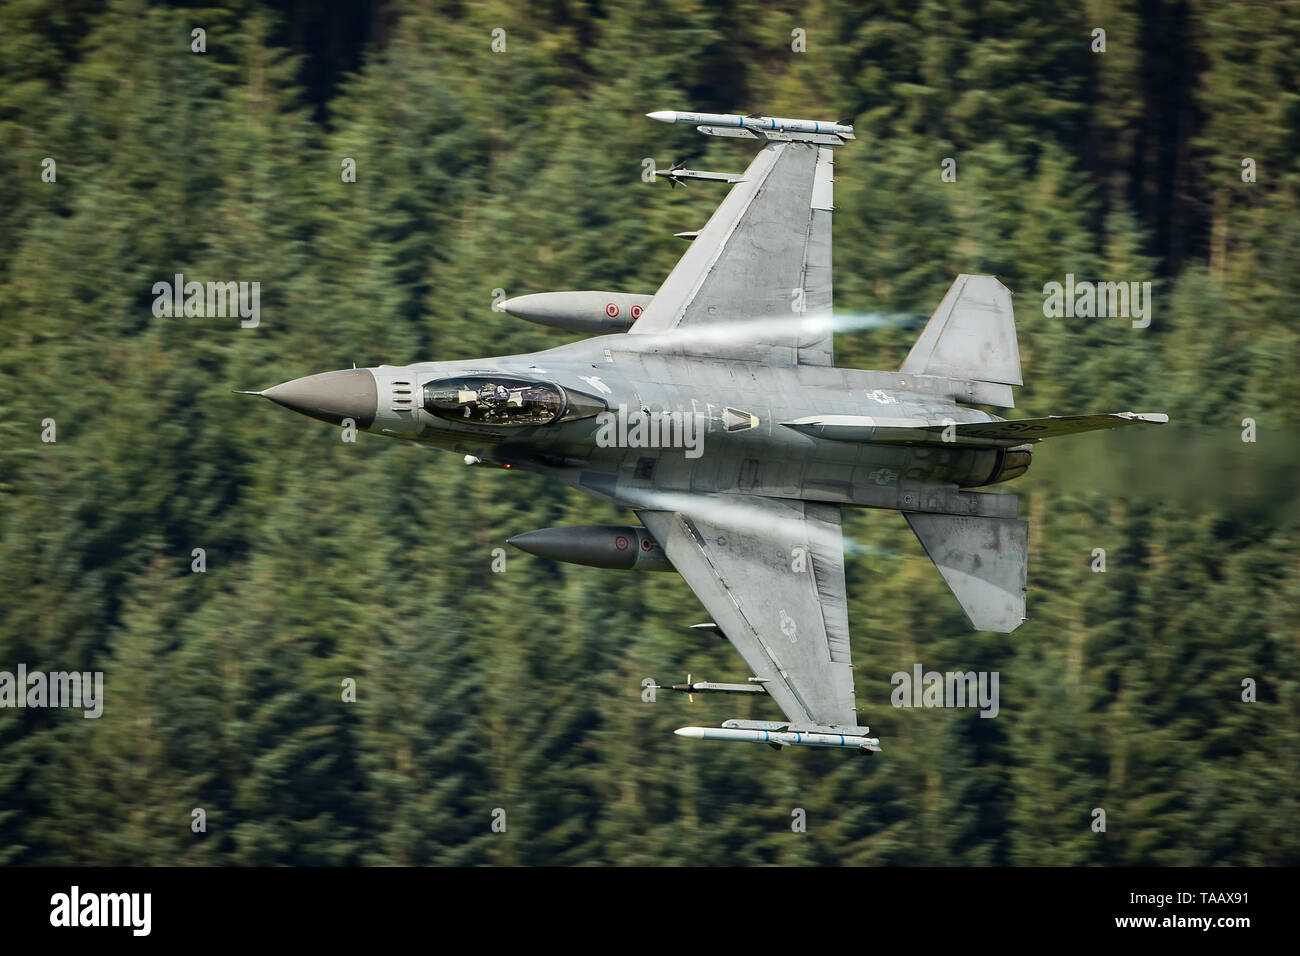 USAF F-16 fighter jet flying low level through the Mach Loop in Wales, UK Stock Photo